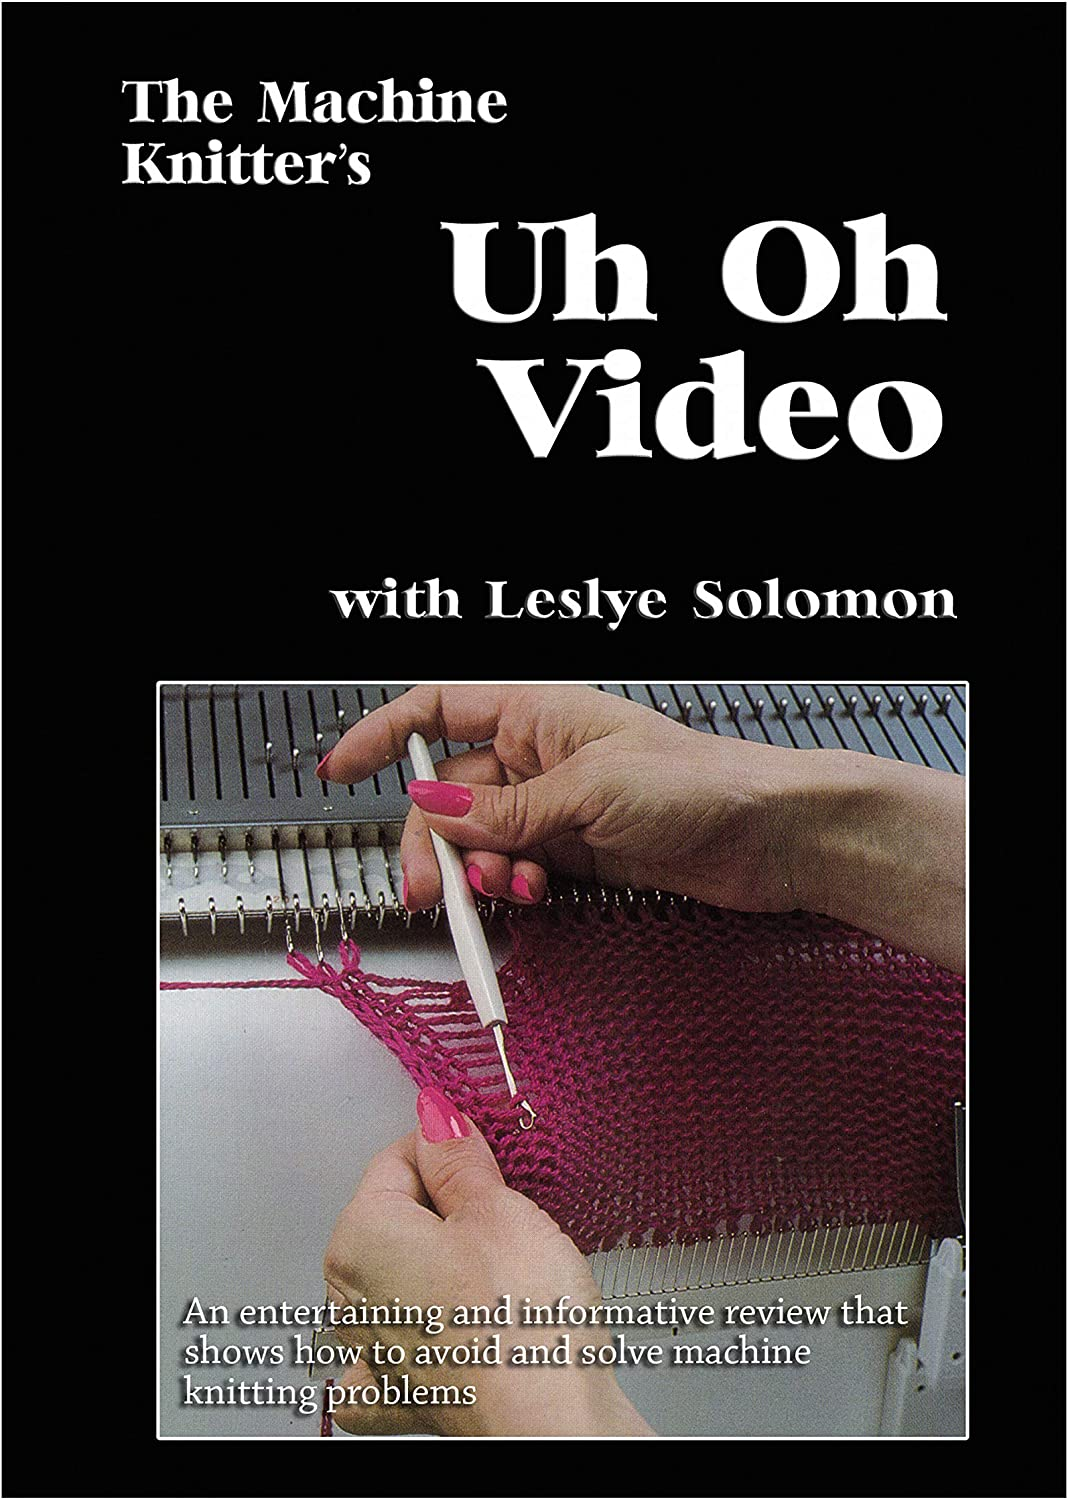 DVD with Leslye Solomon The Machine Knitters Uh Oh Video